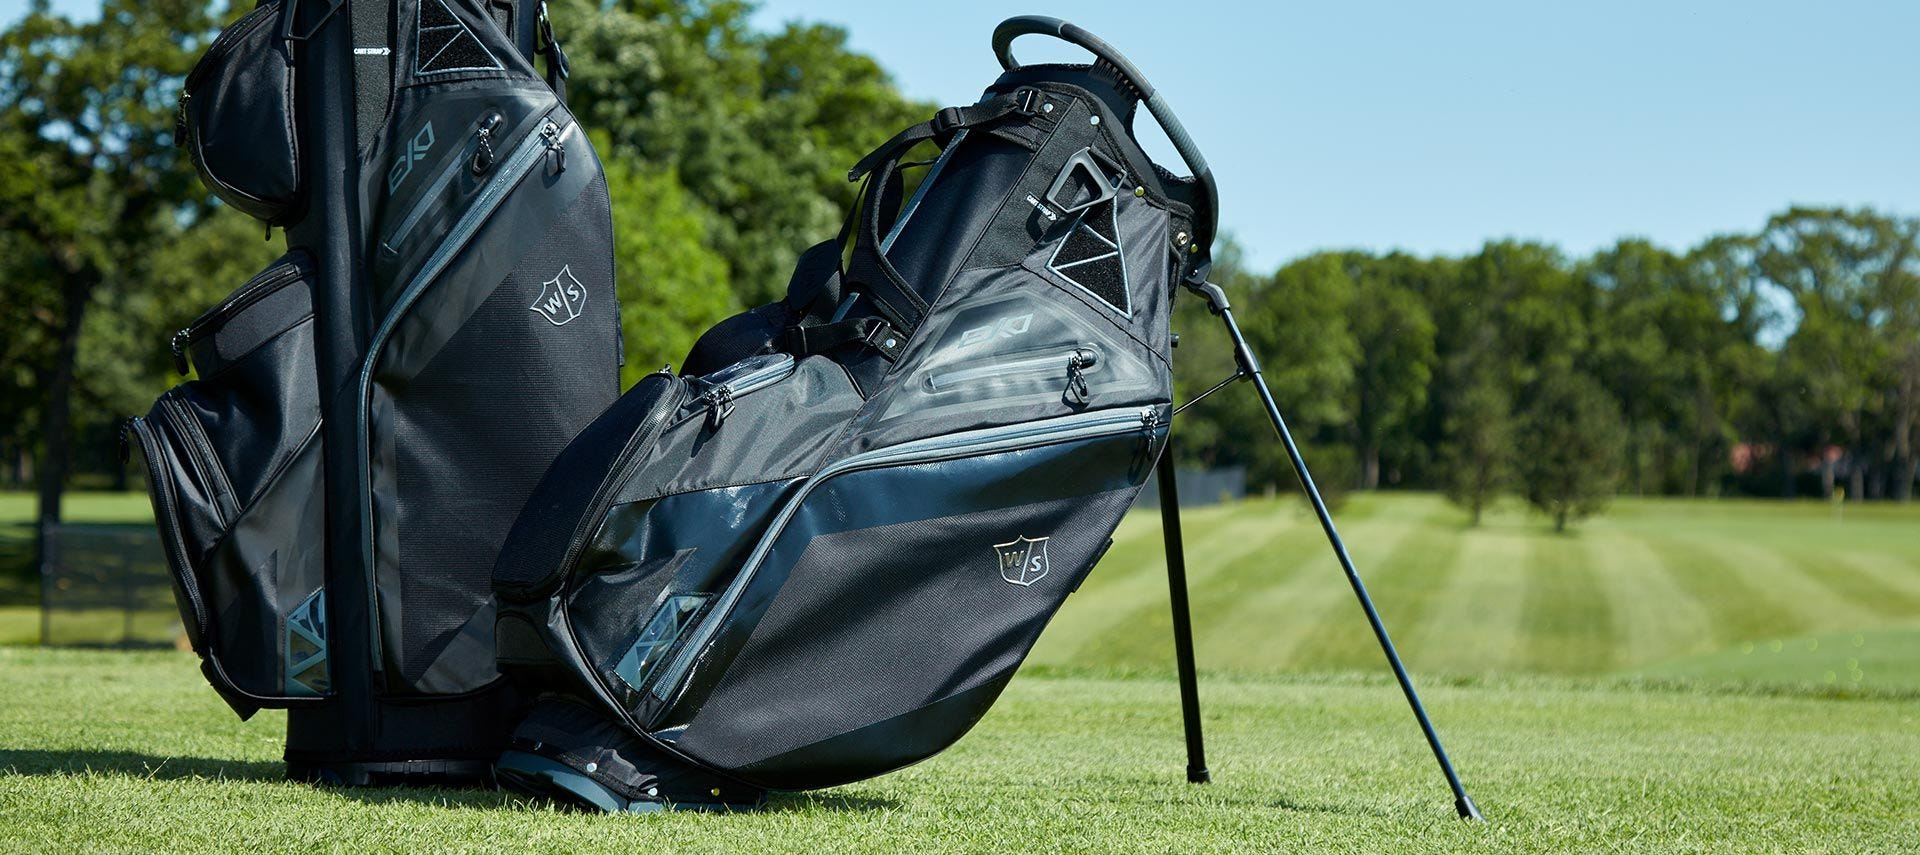 Full view of EXO Cart and EXO Carry bag on golf course